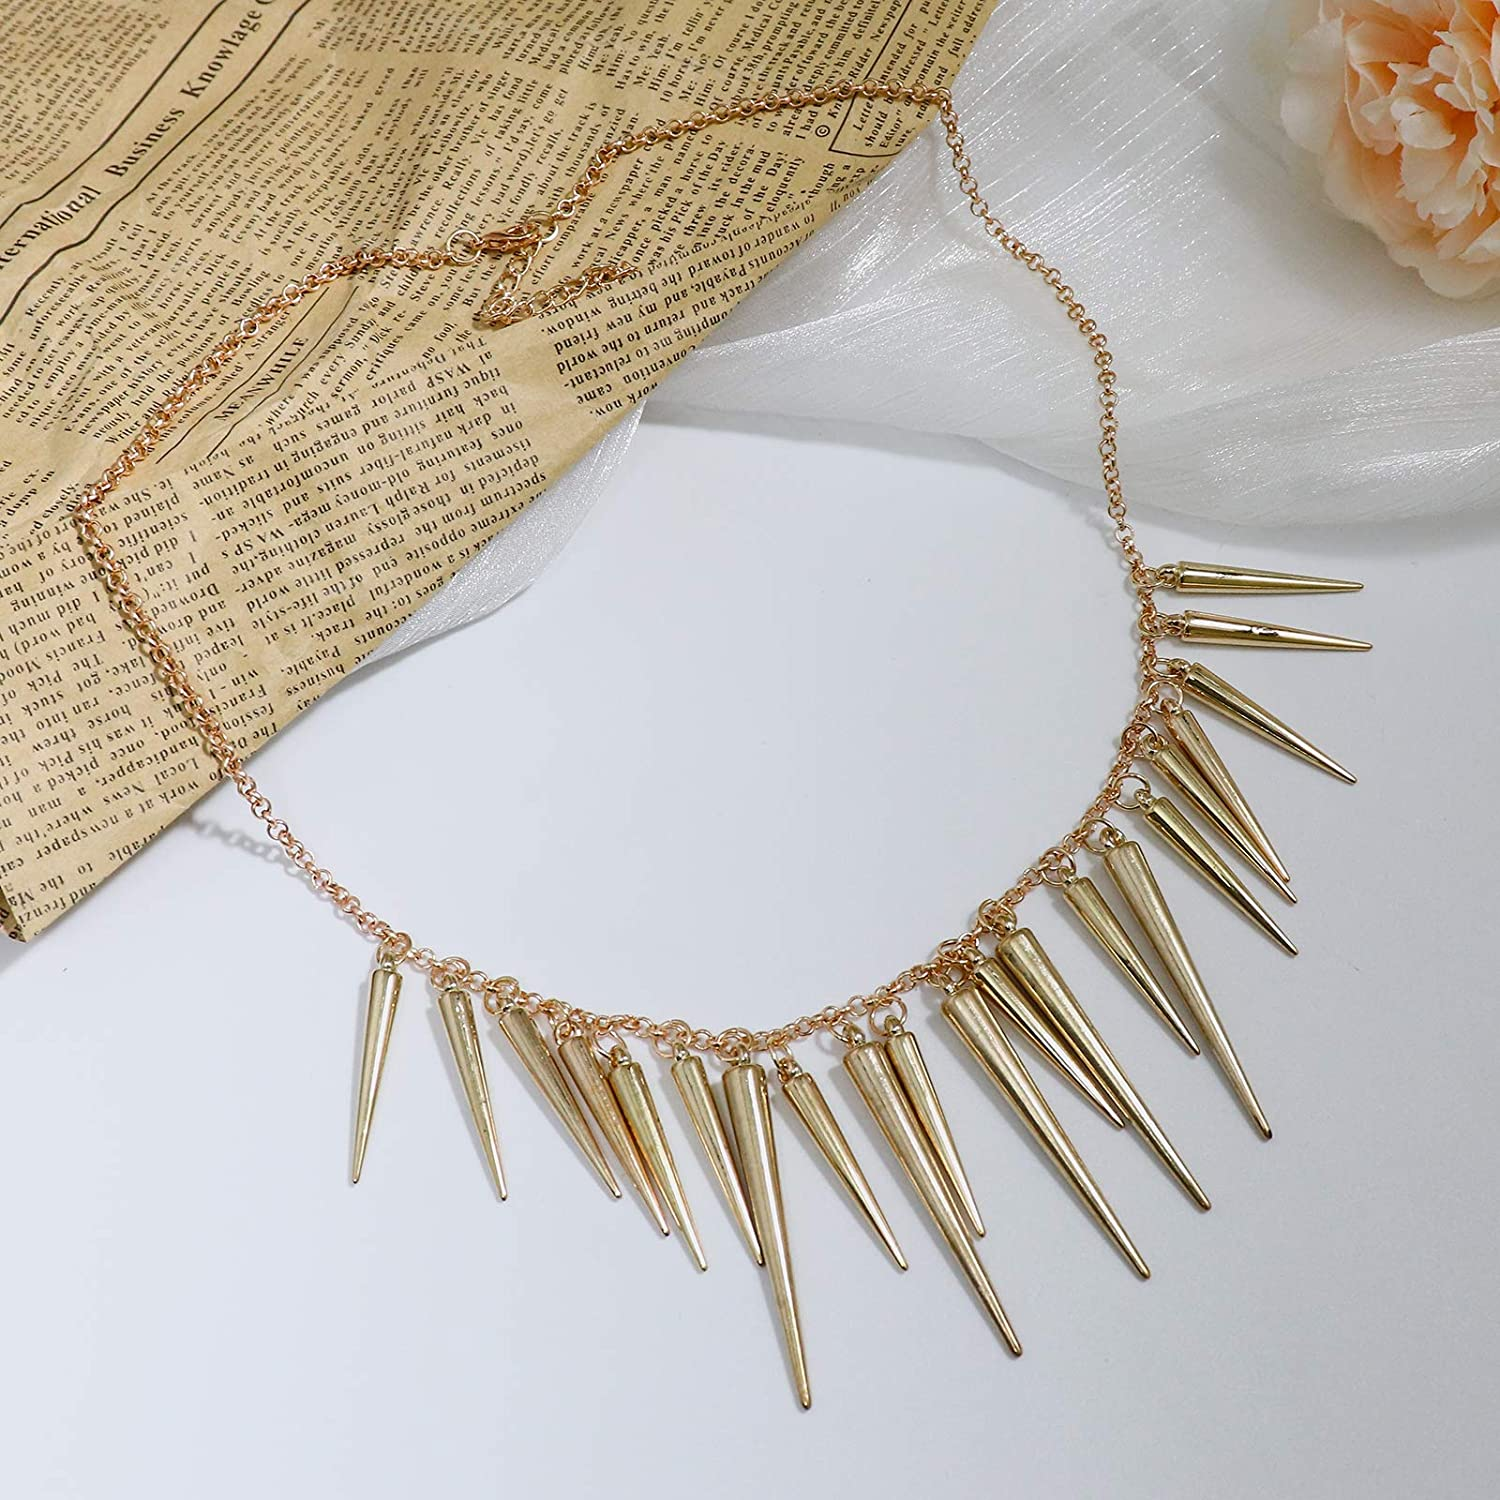 Fashion Spikes Rivets Draped Chunky Collar Necklace for Women Girls Jewelry